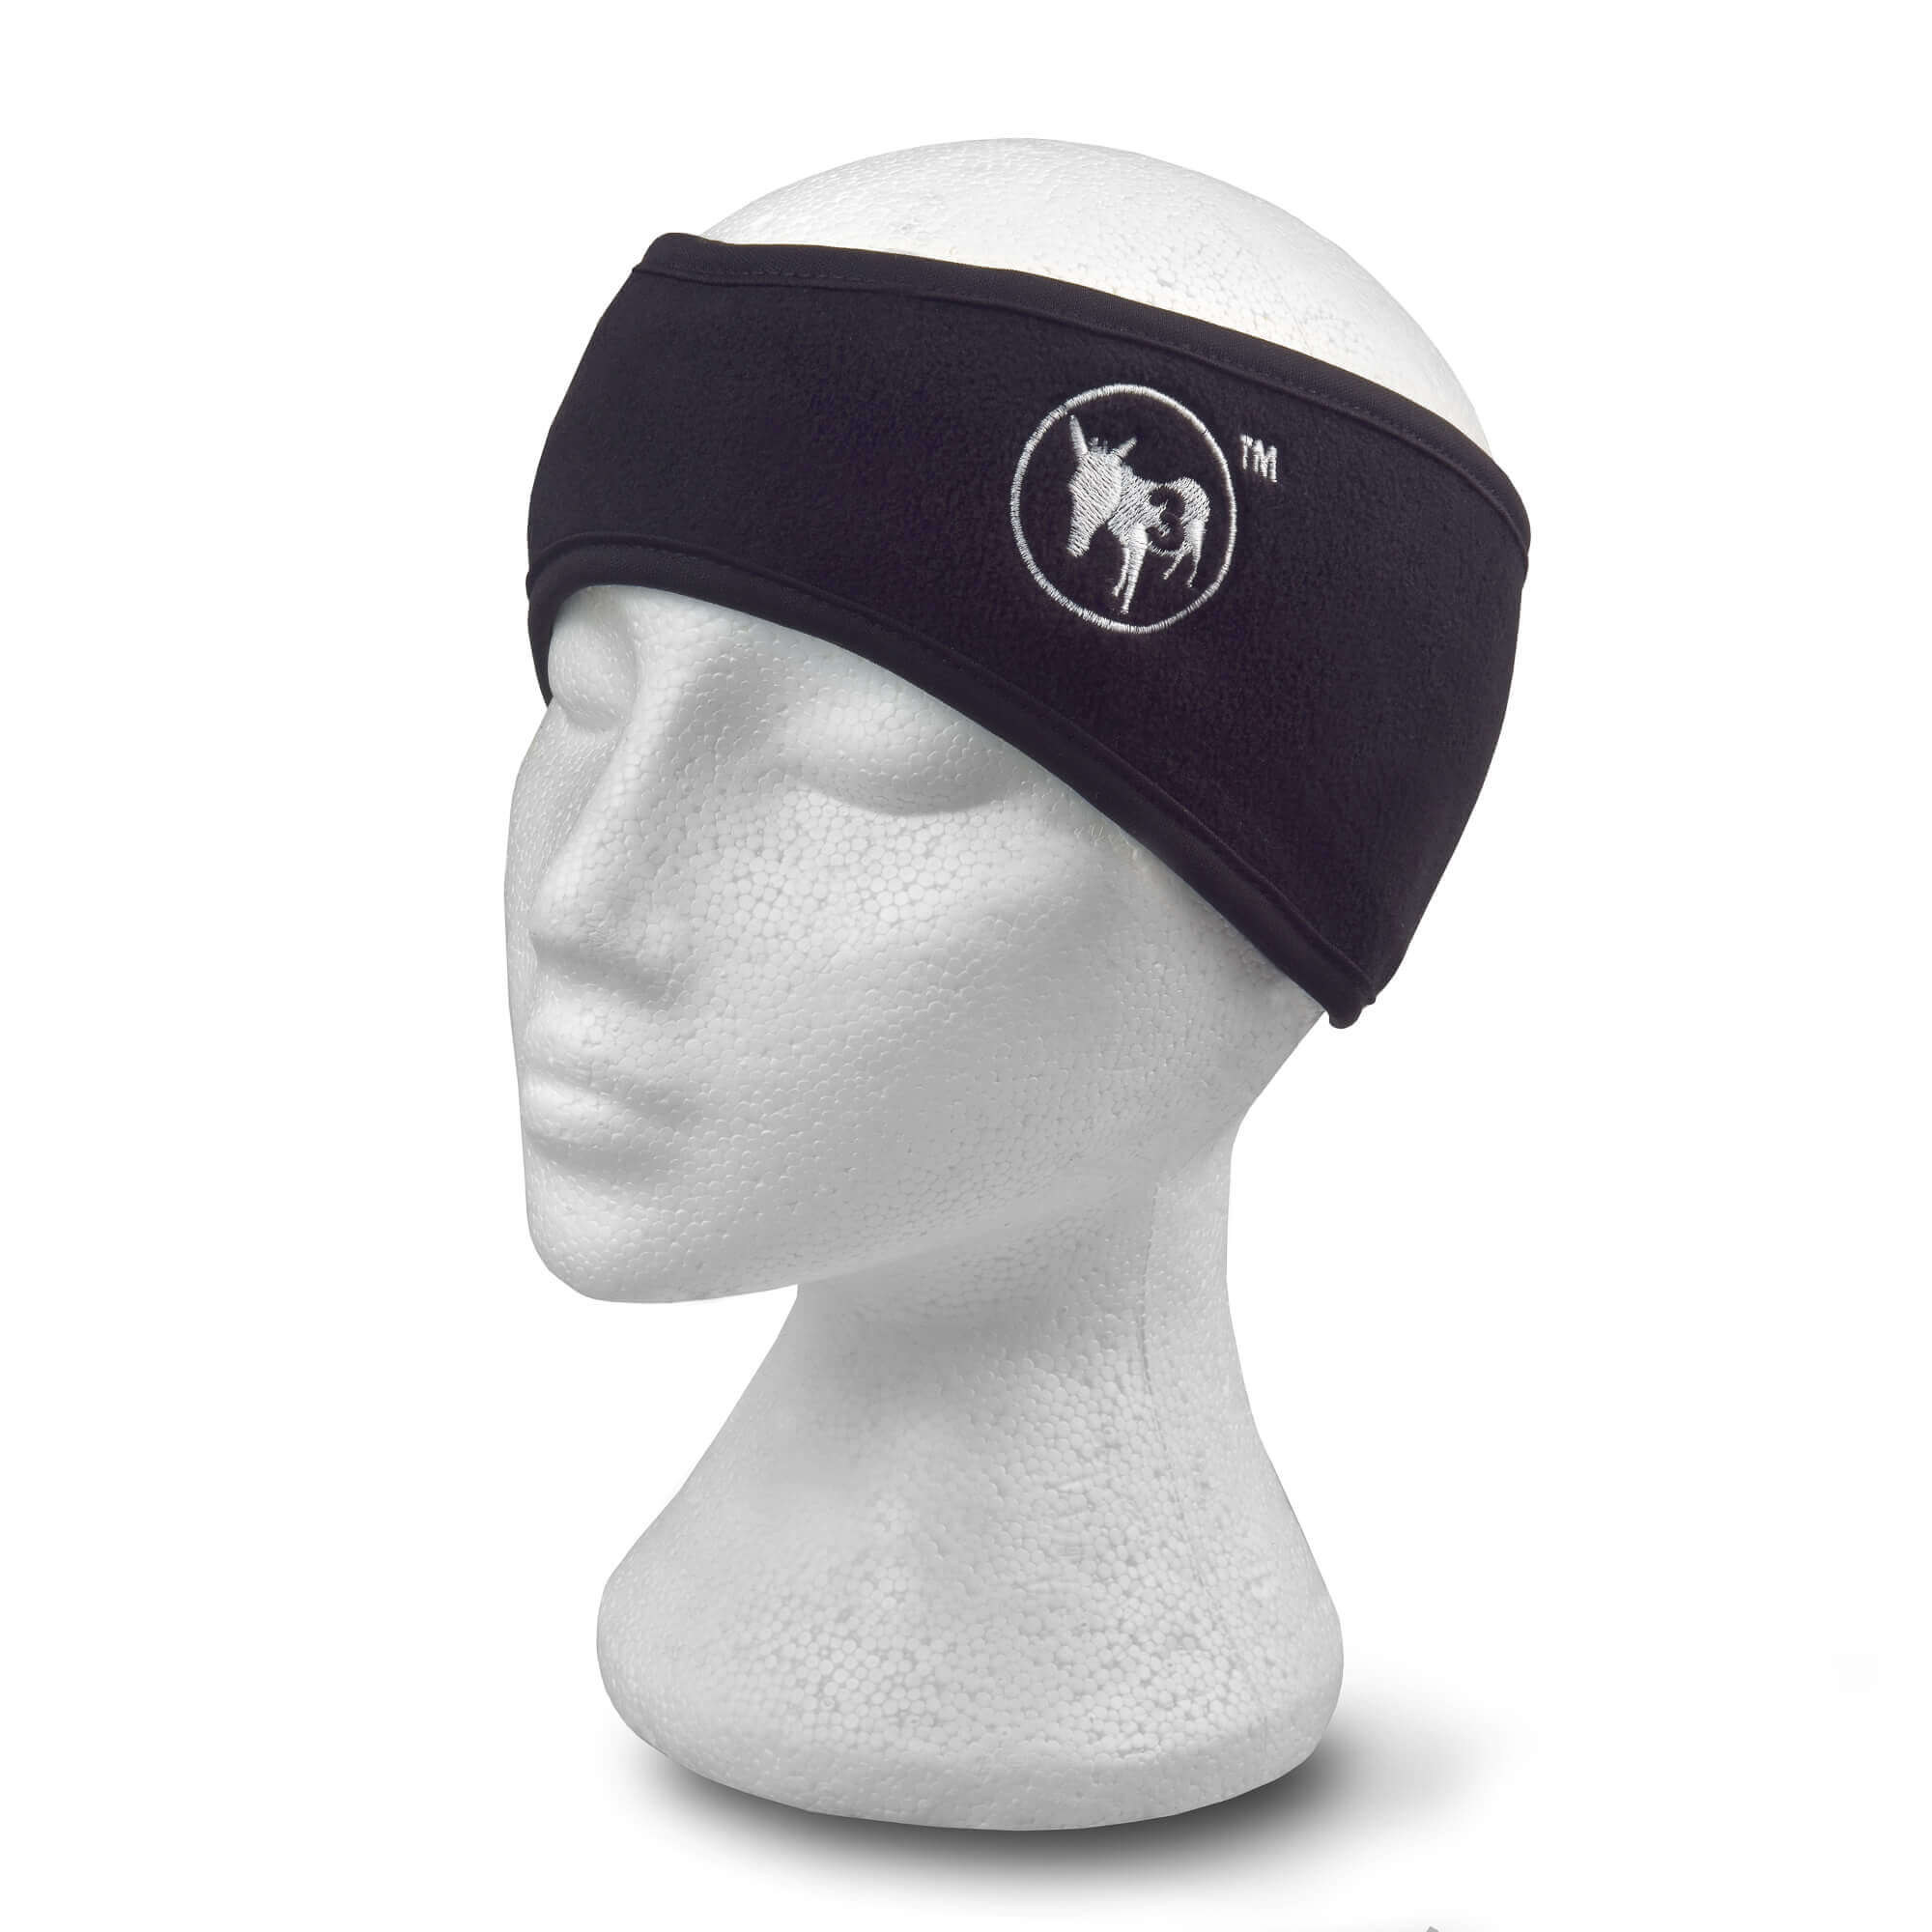 black headband on white head dummy